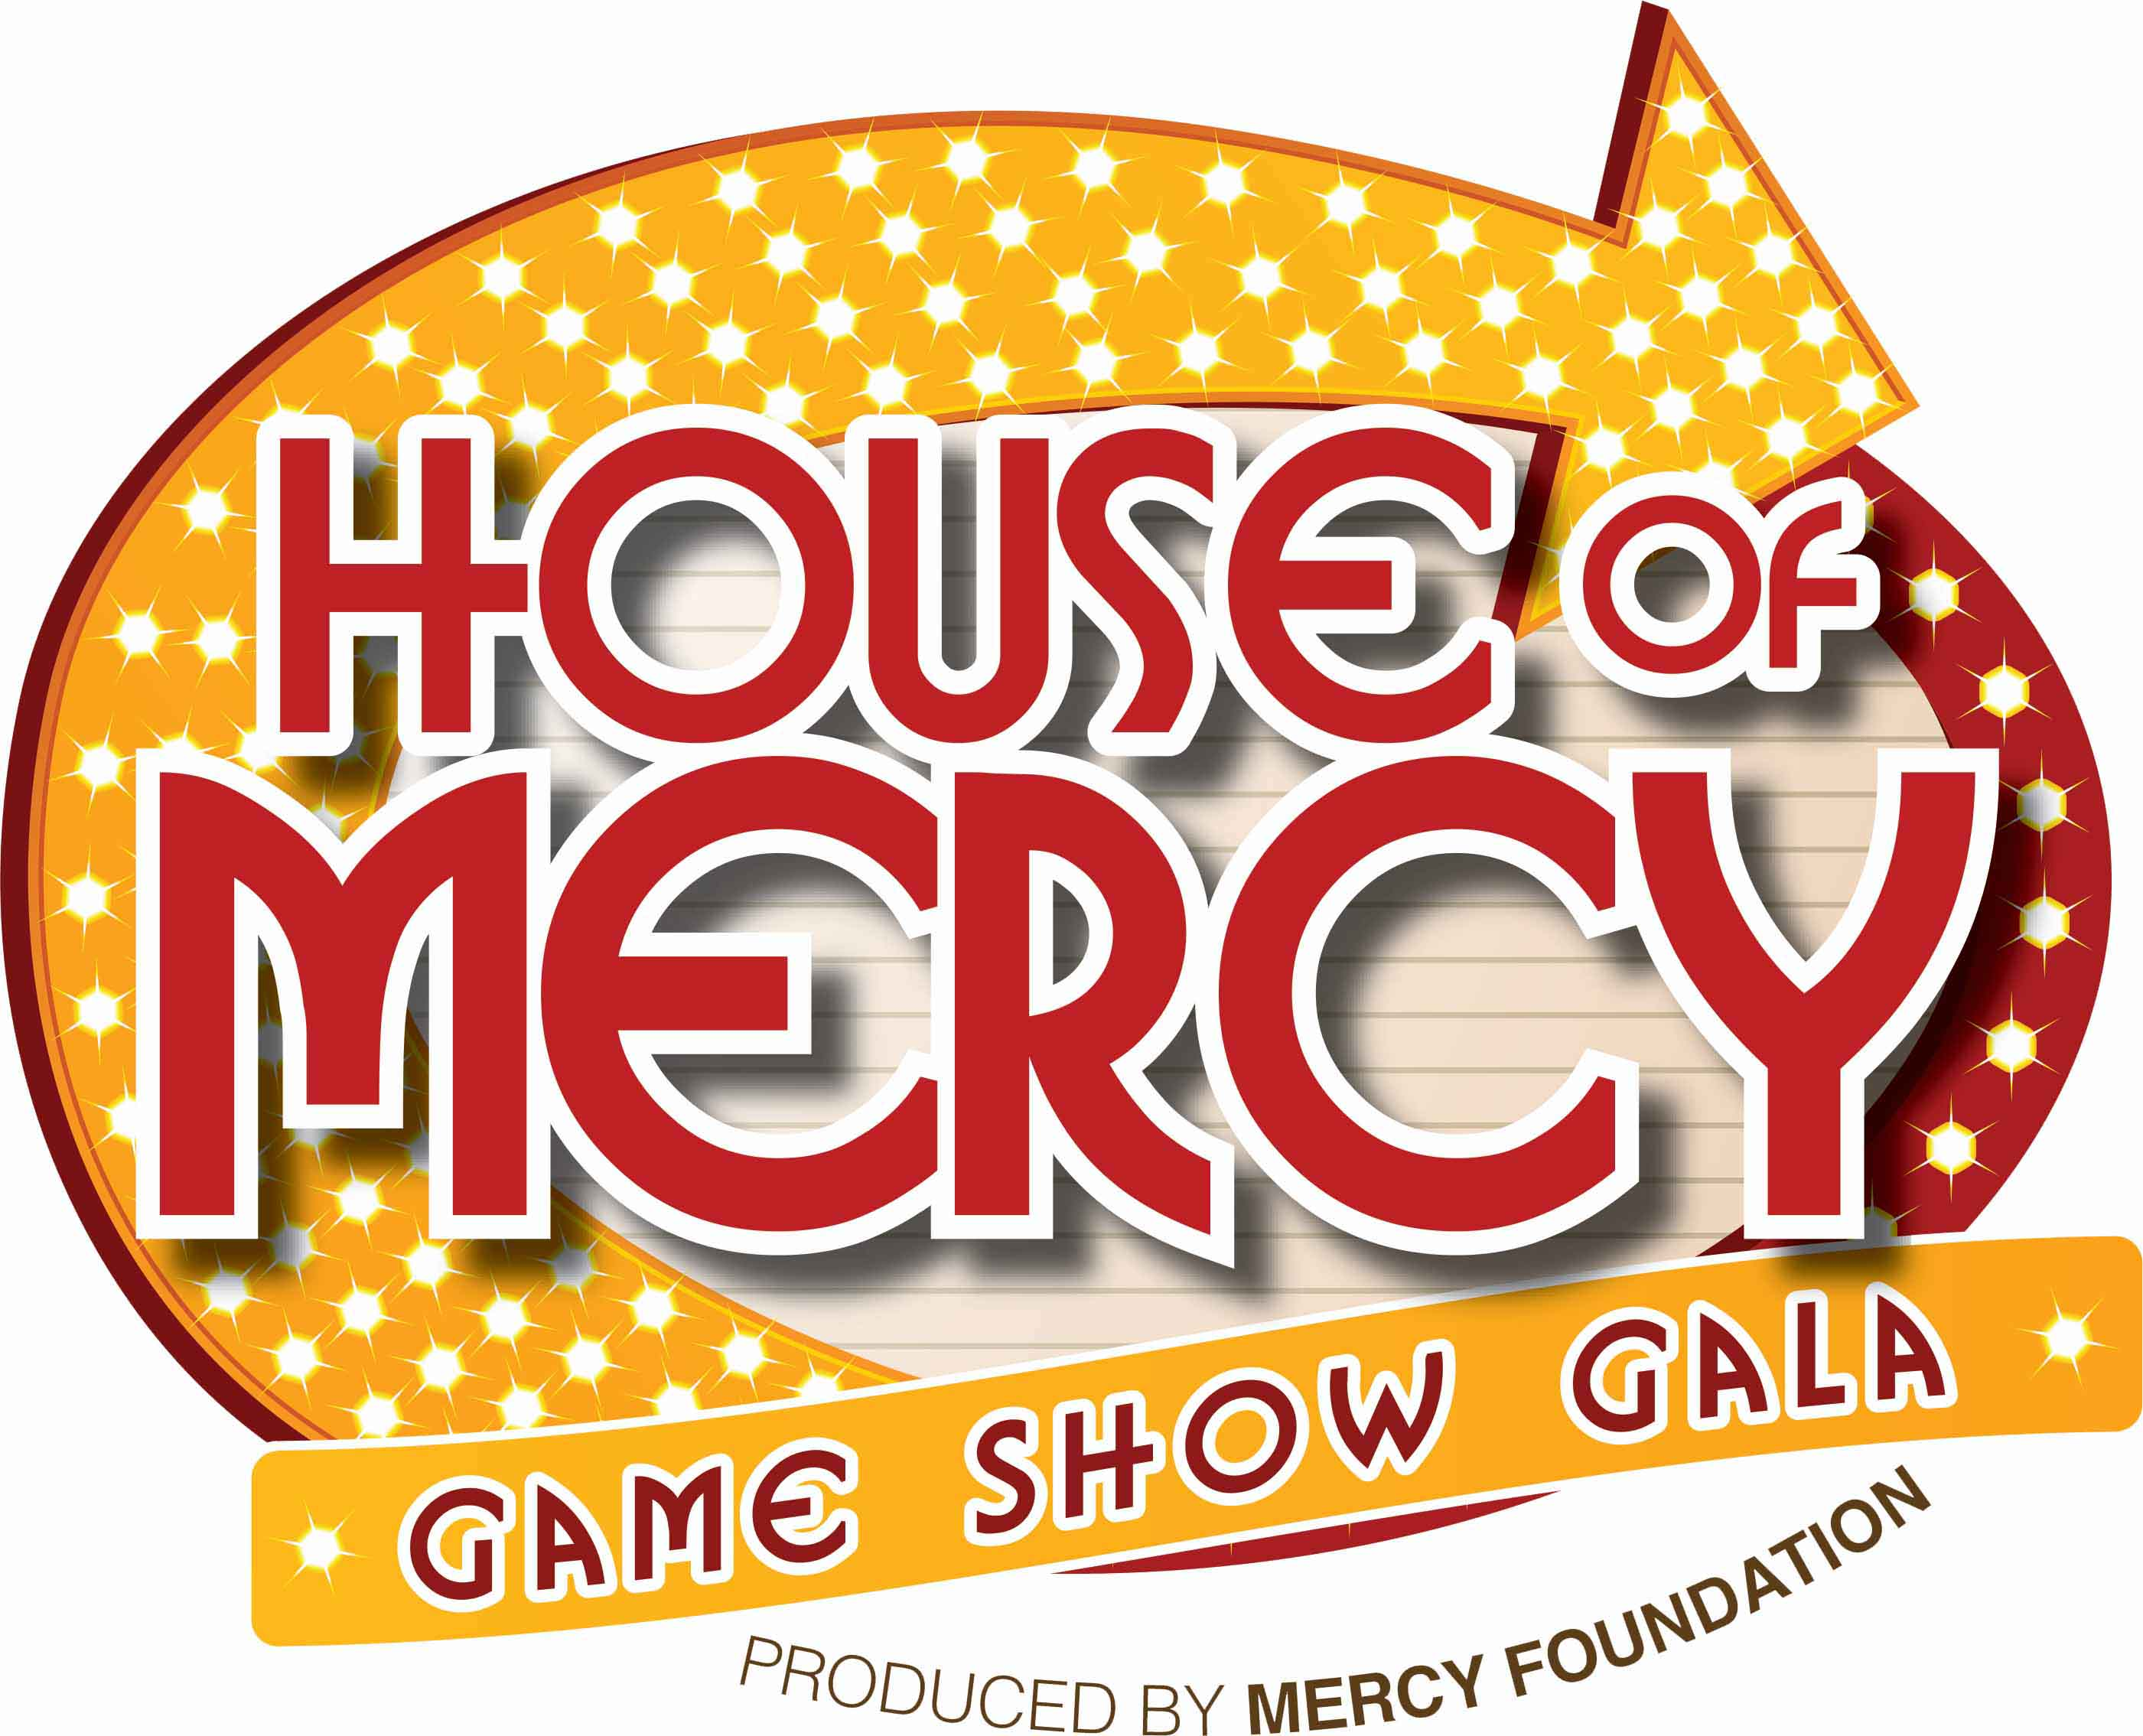 House of Mercy Game Show Gala